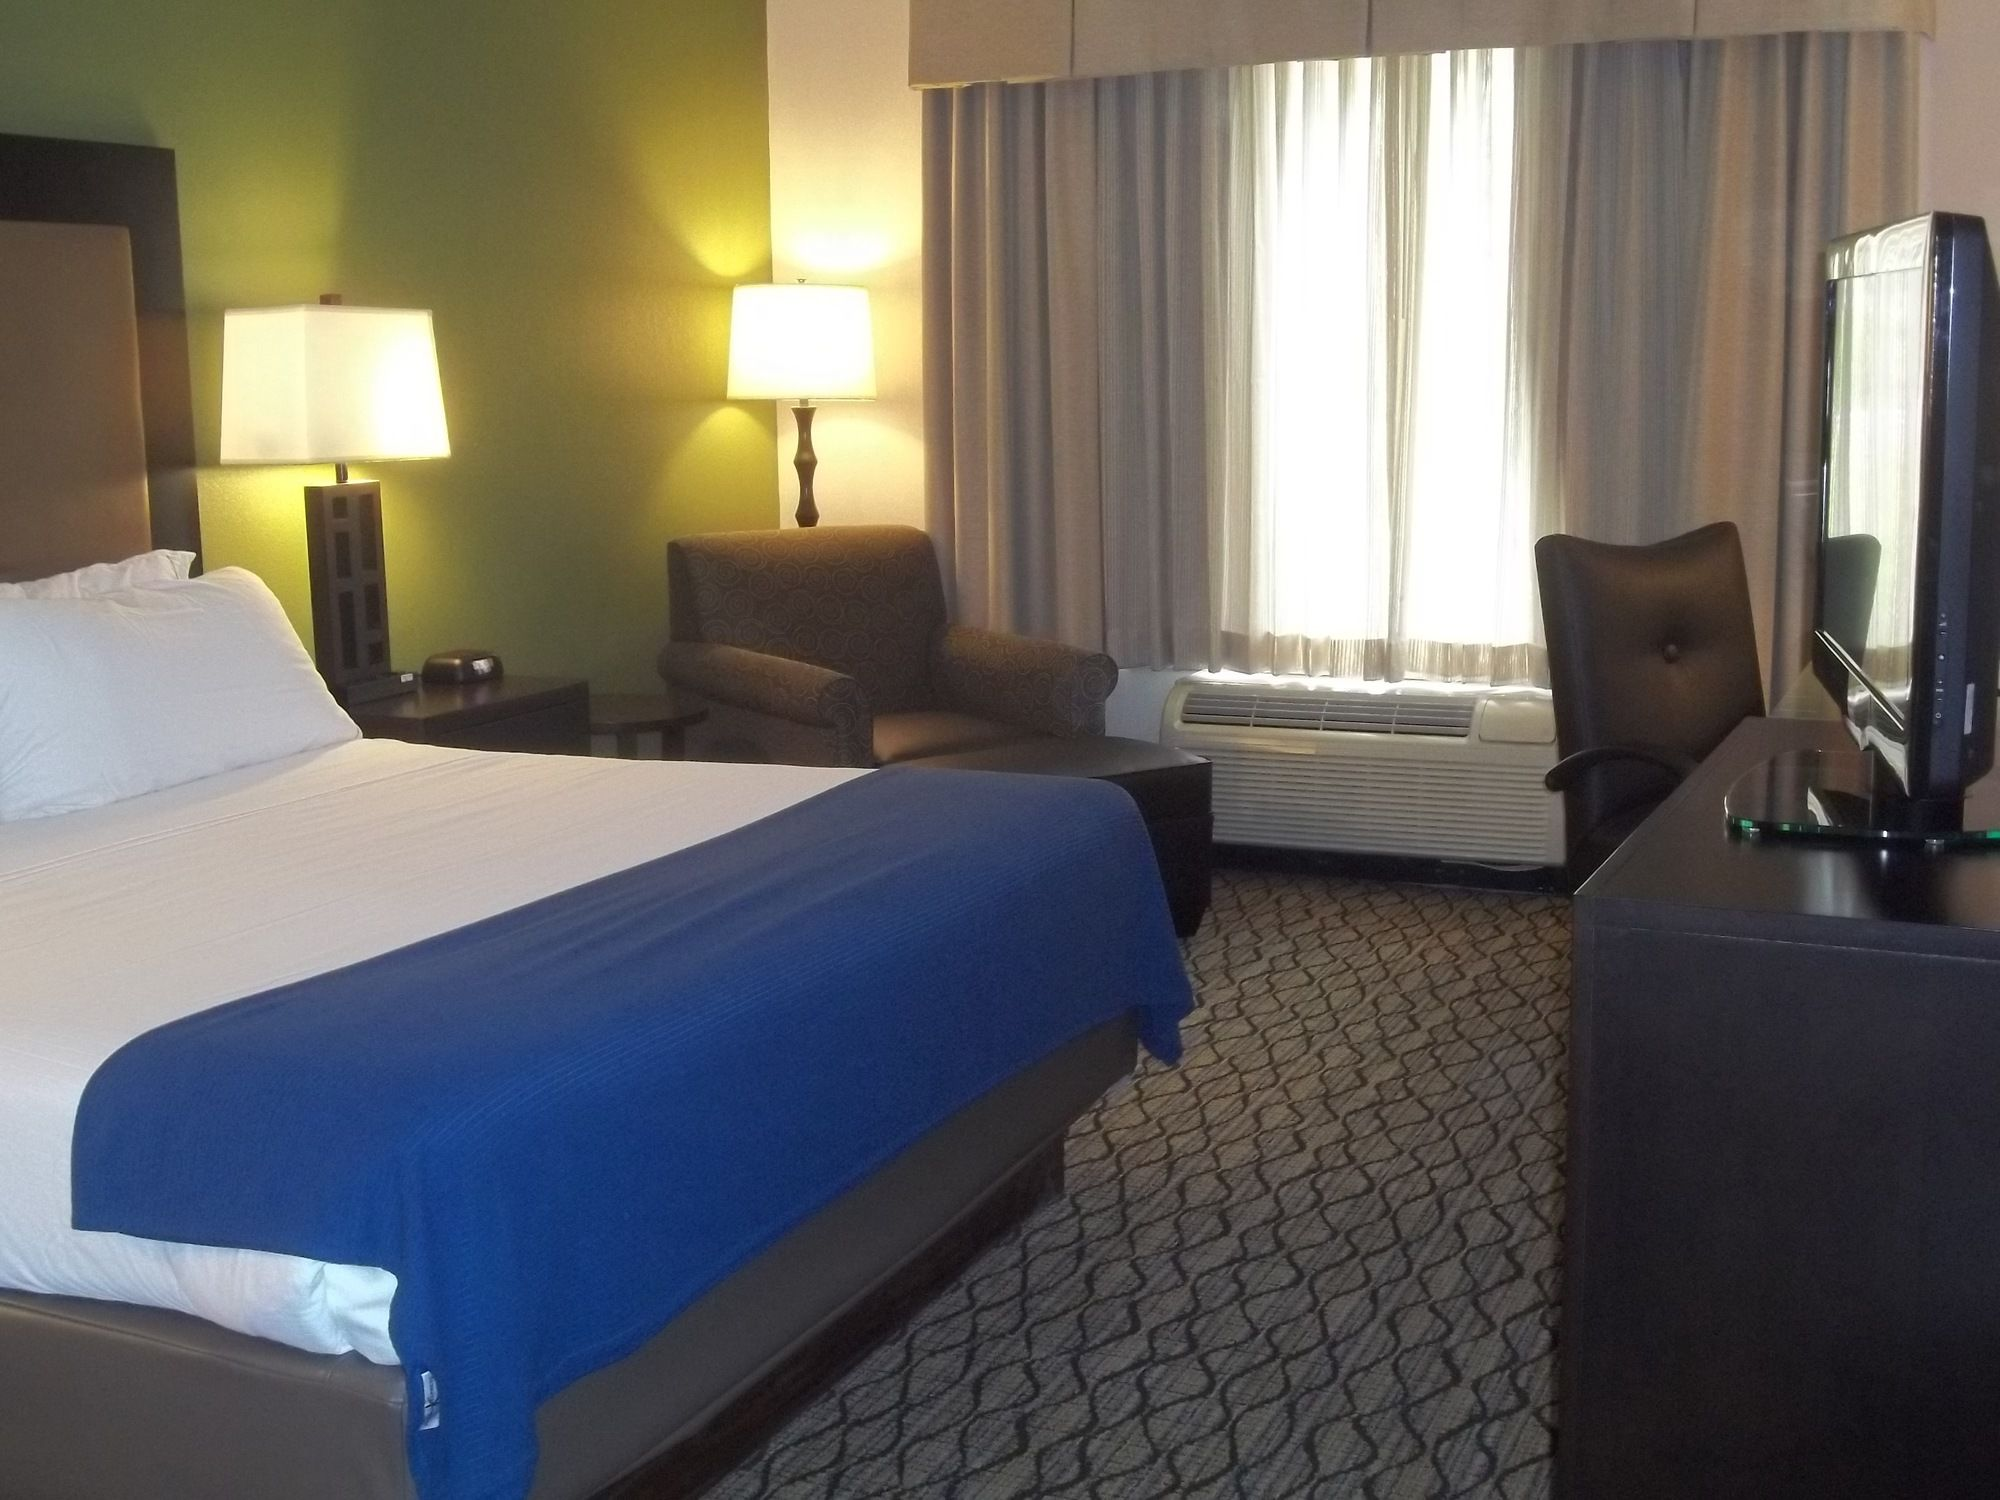 Holiday Inn Express & Suites in Winchester, VA